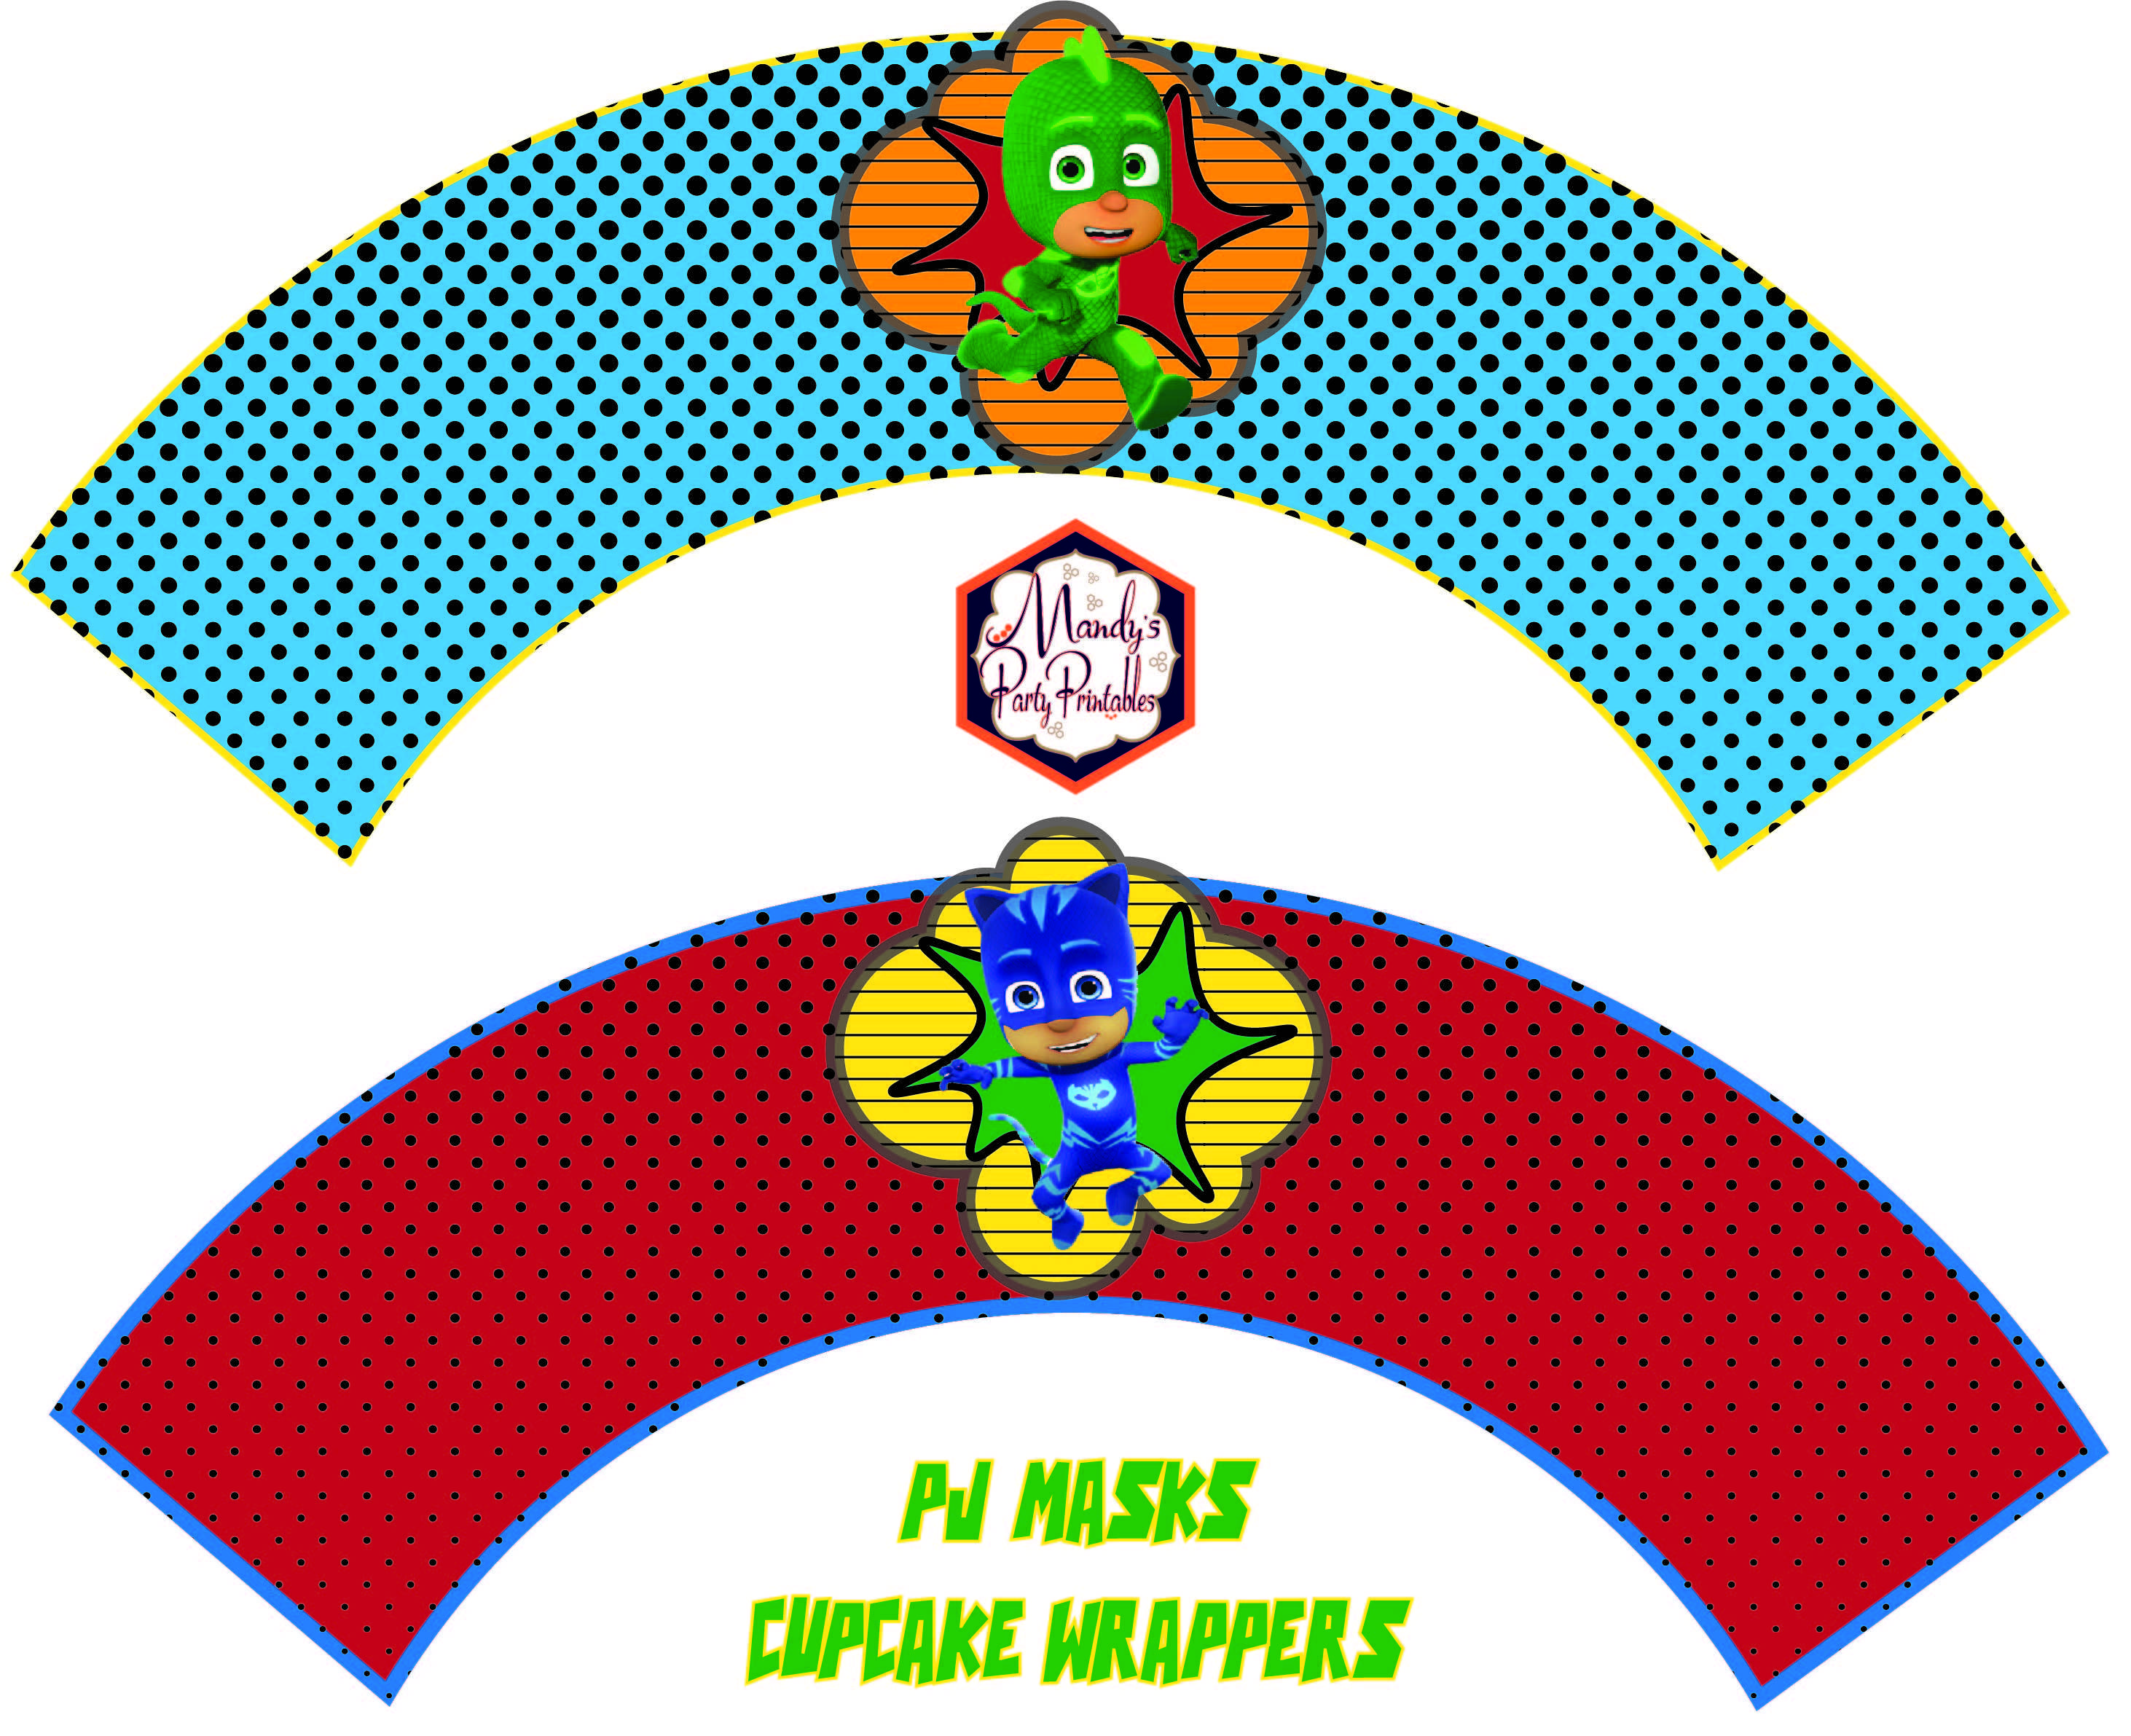 PJ-Masks-Cupcake-Wrappers